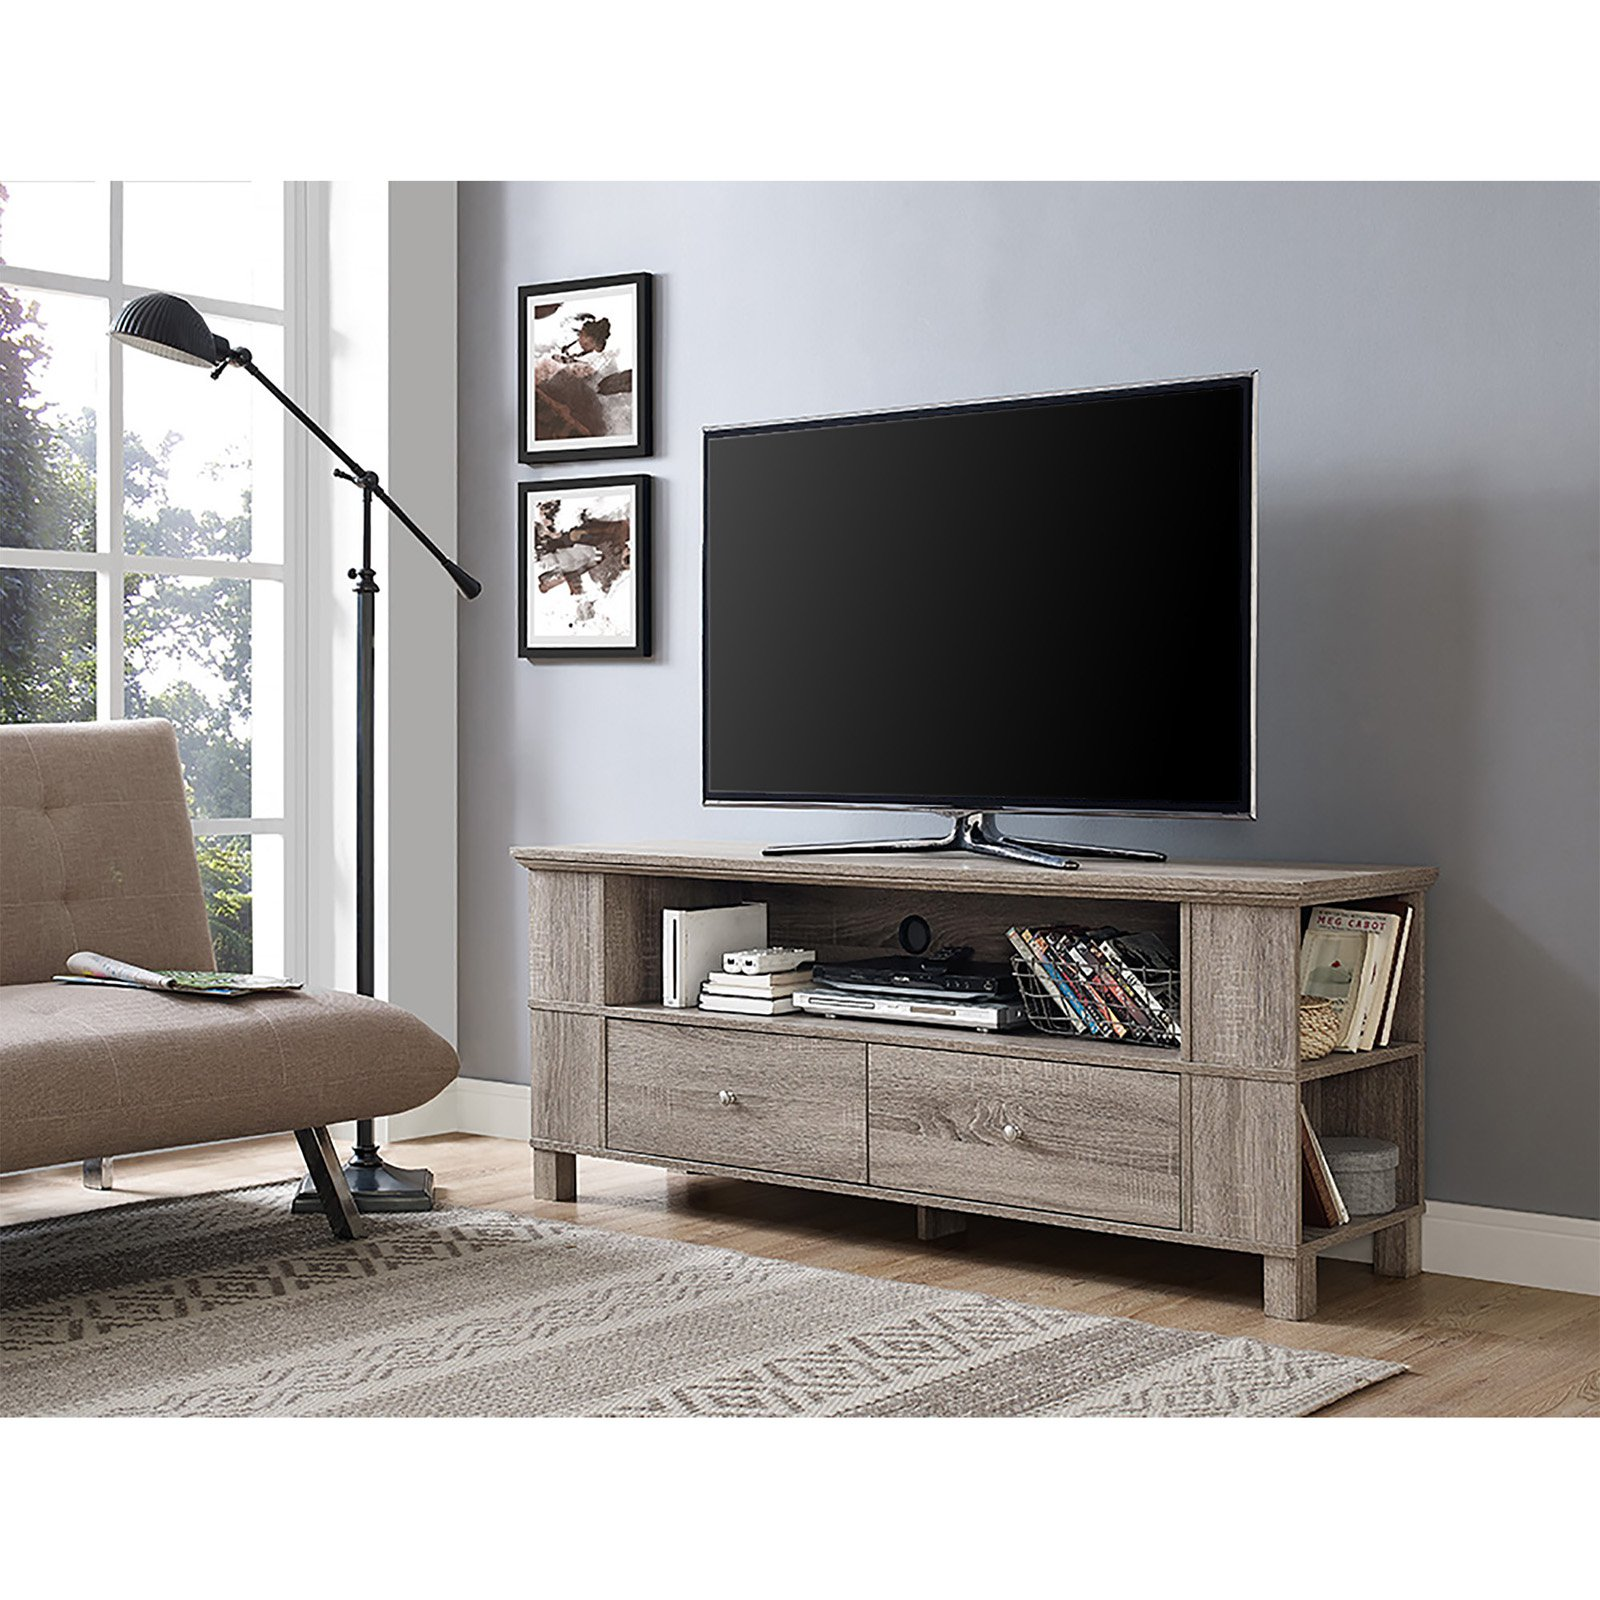 "Wood TV Media Storage Stand for TV's up to 65"", Driftwood"